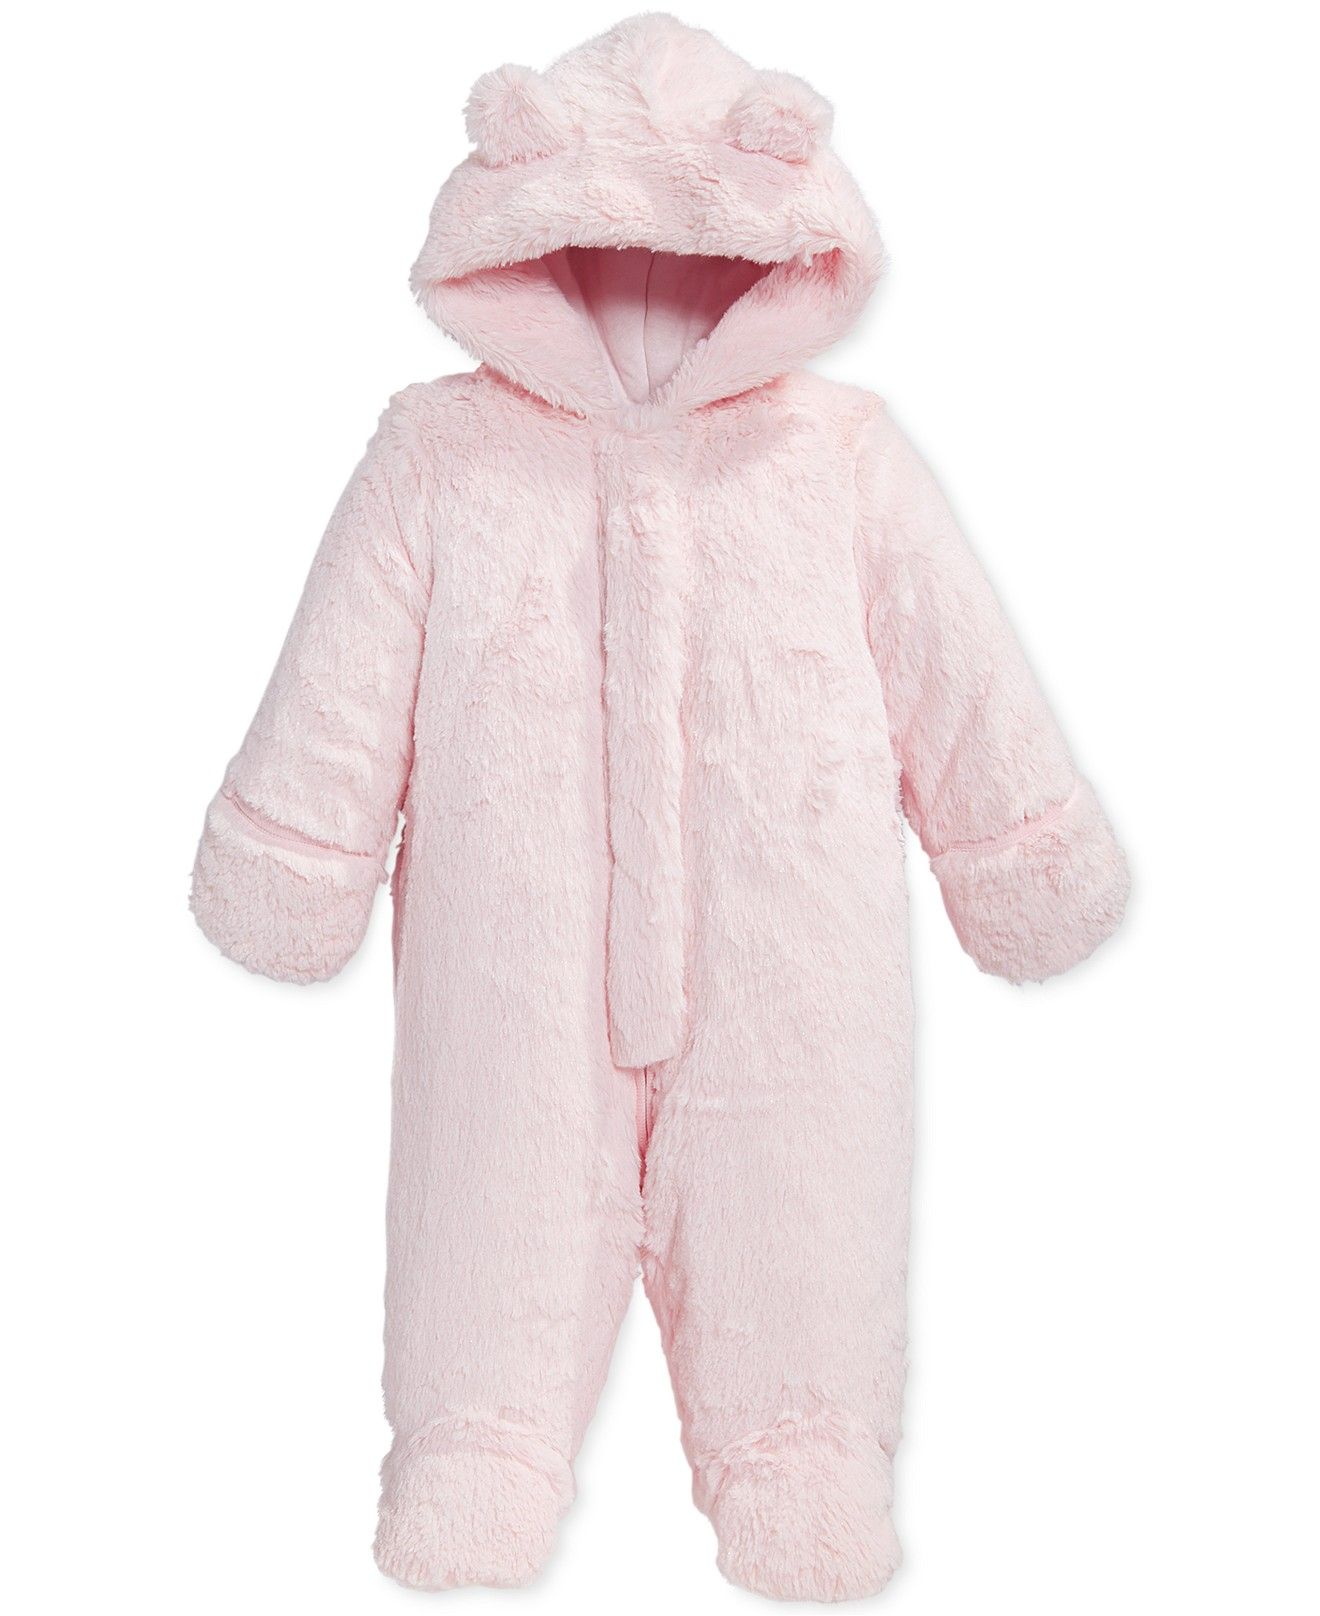 First Impressions Babies' Snowsuit - Baby Girl (0-24 months) - Kids & Baby - Macy's